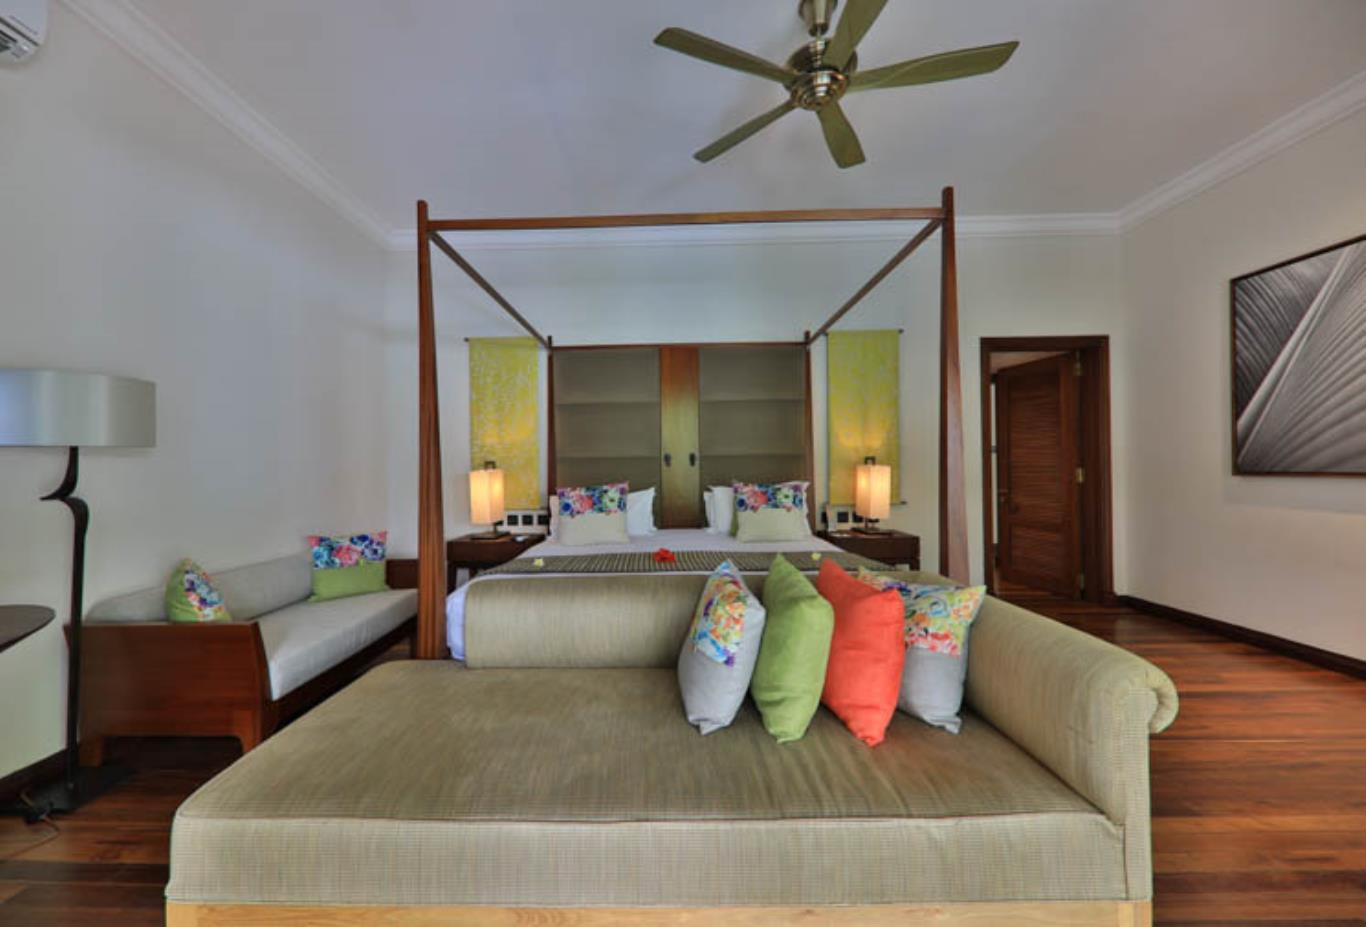 Exclusive Suite Pool Villa bedroom interior